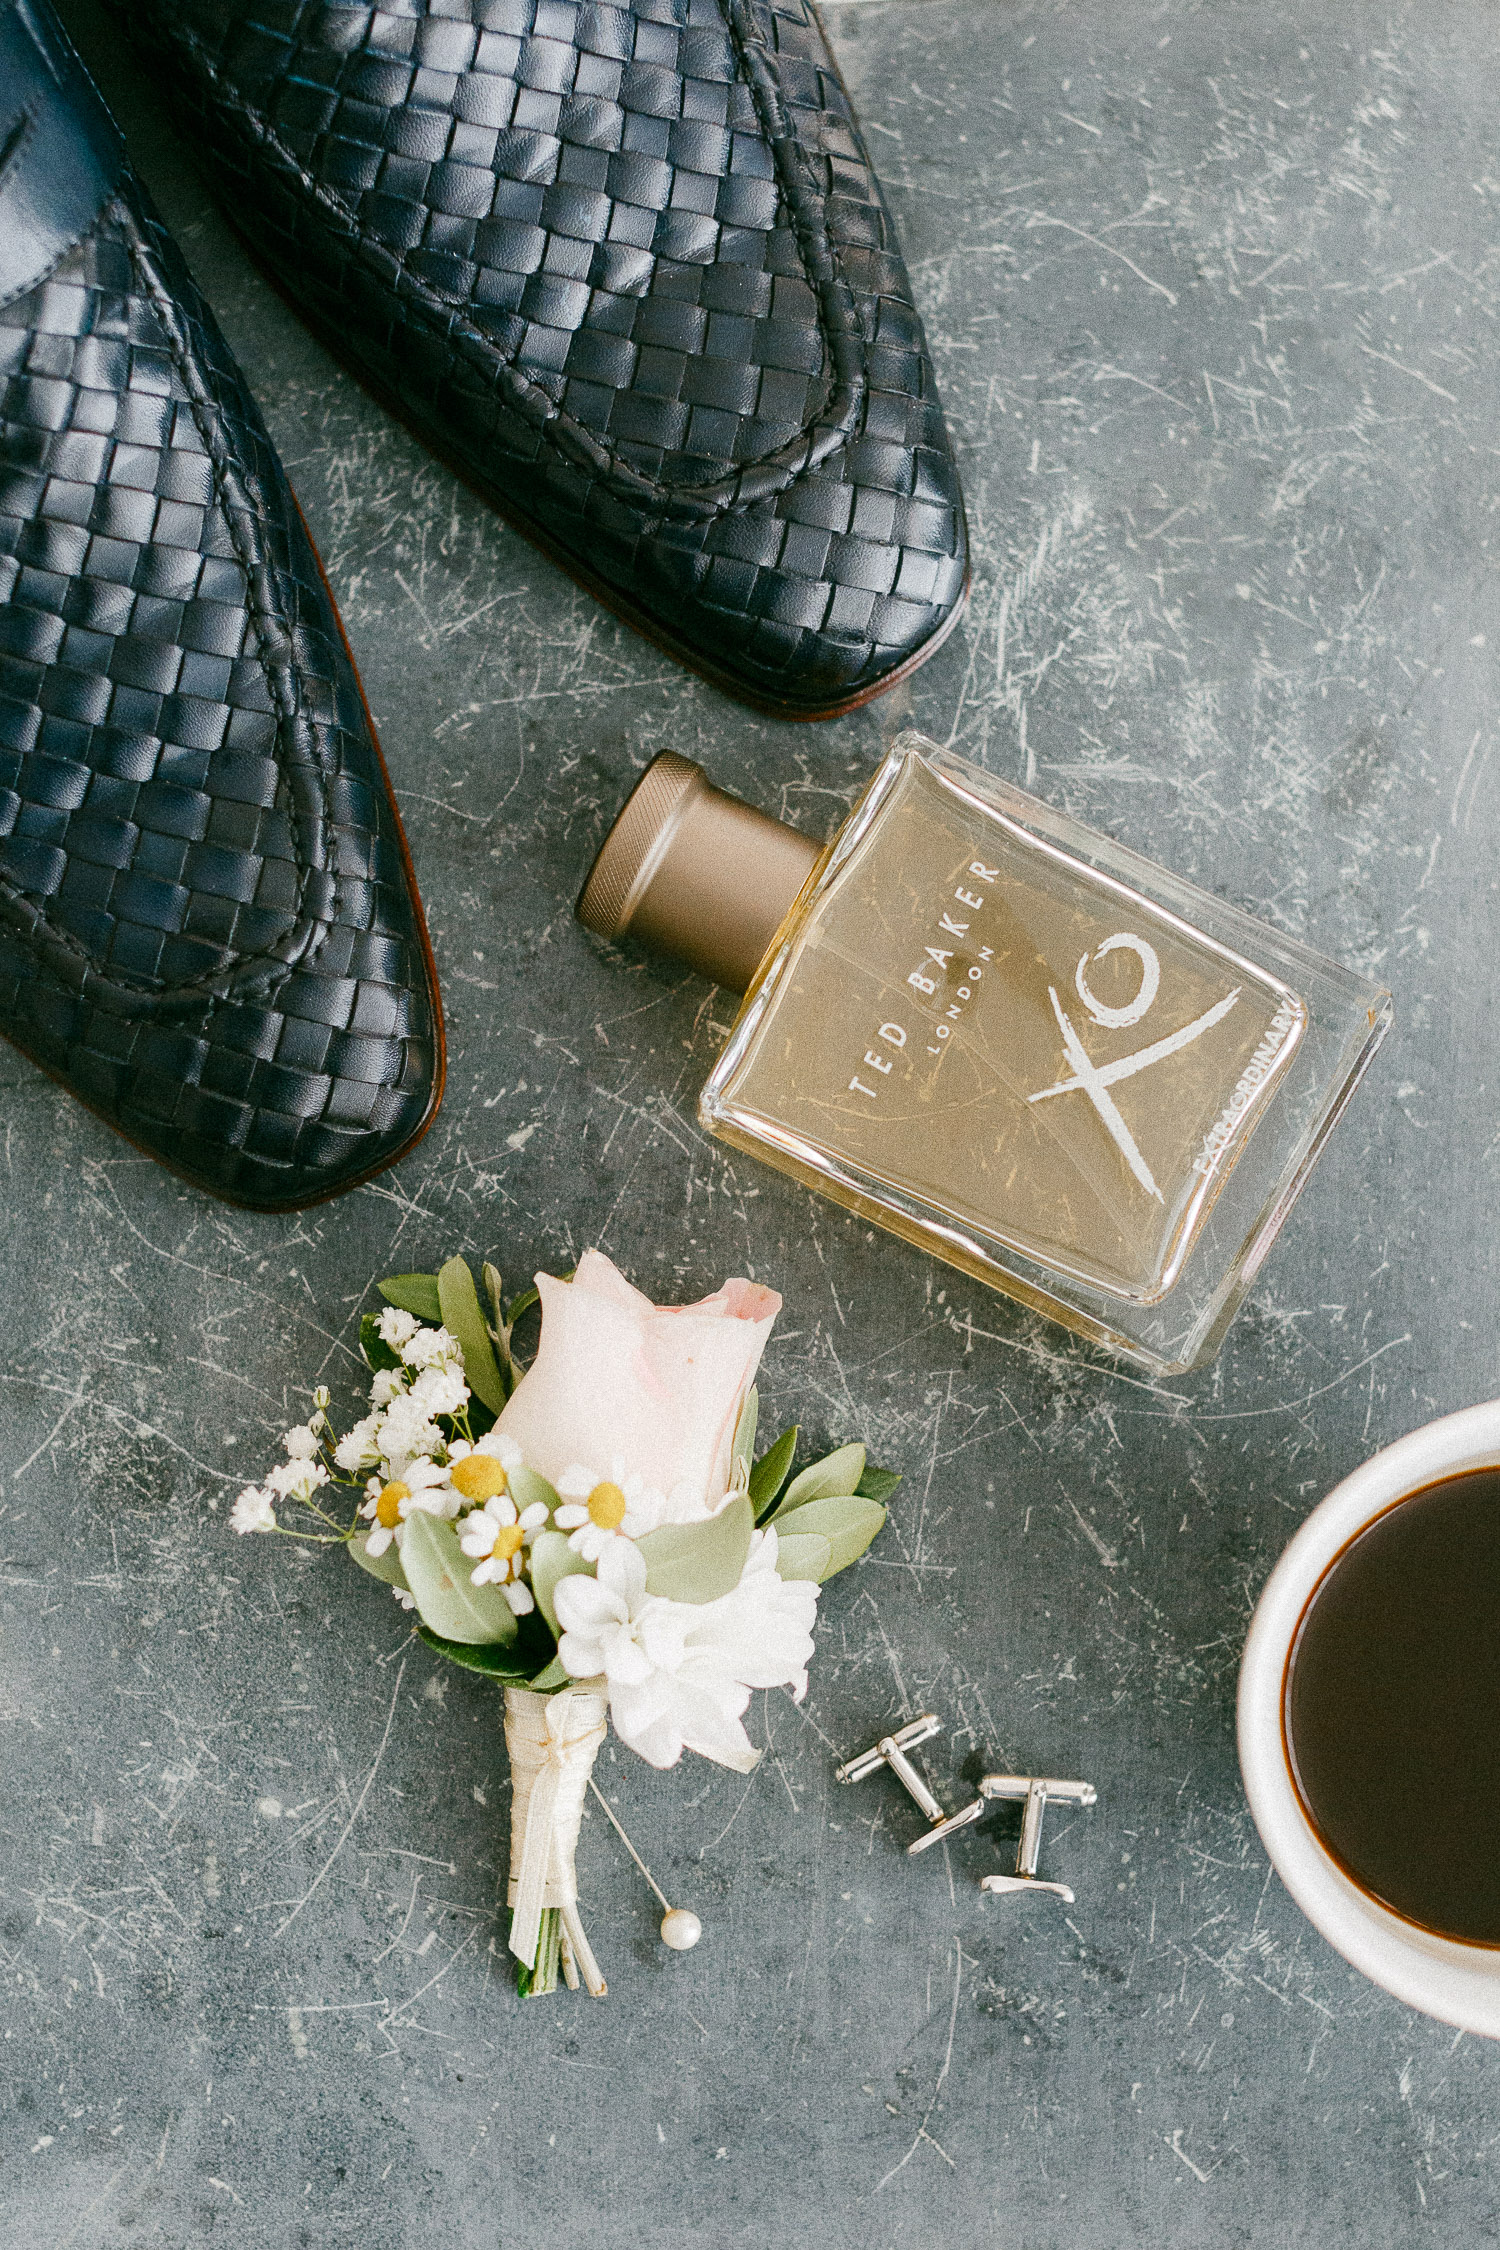 Groom styling details flat-lay photography at Old World micro wedding in Corfu Island